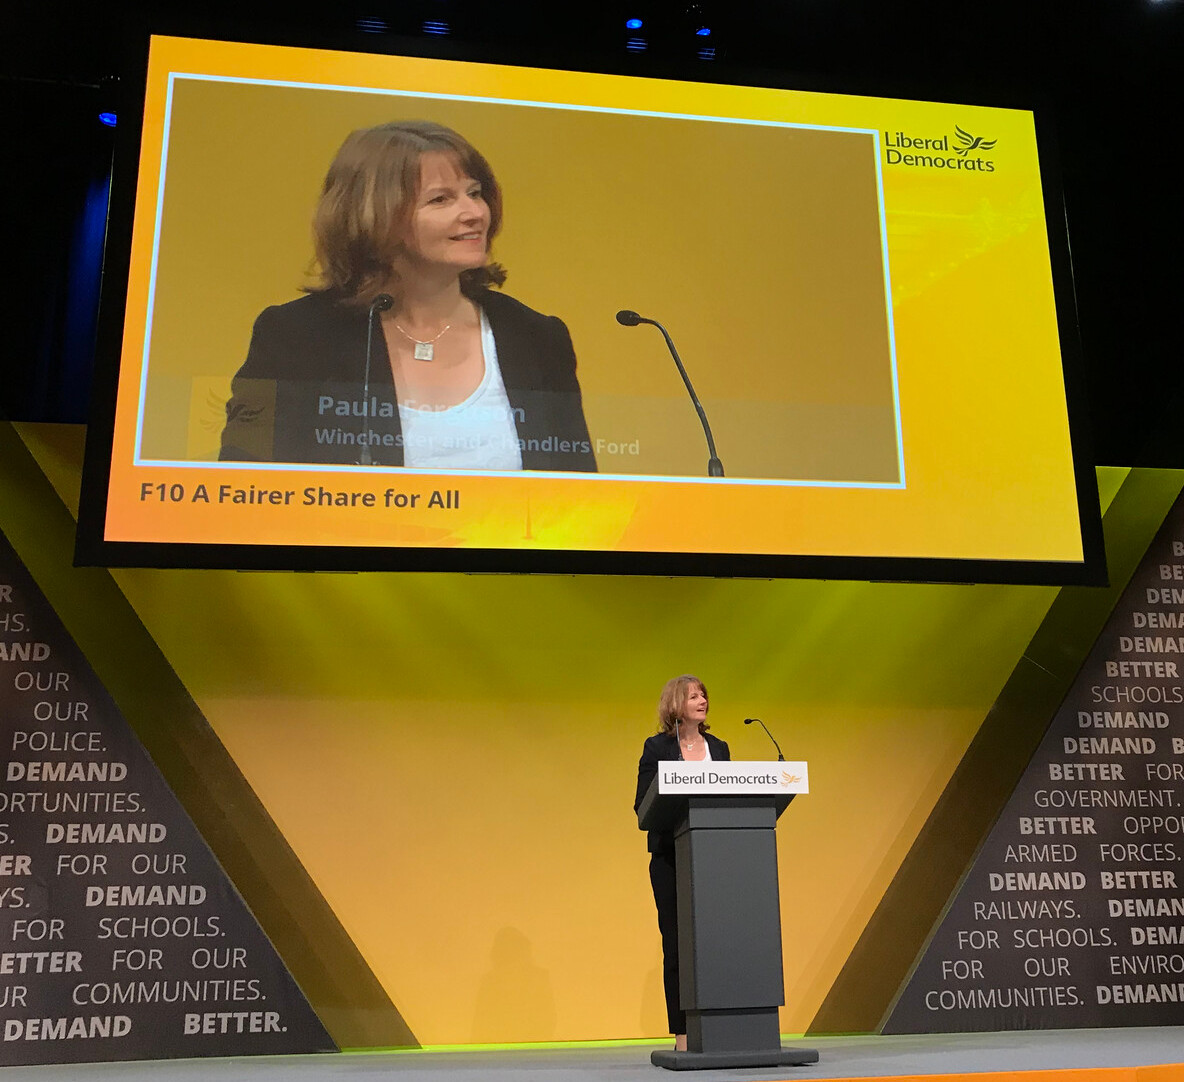 Paula Ferguson, speaking at the Liberal Democrat conference, on the subject of inequality